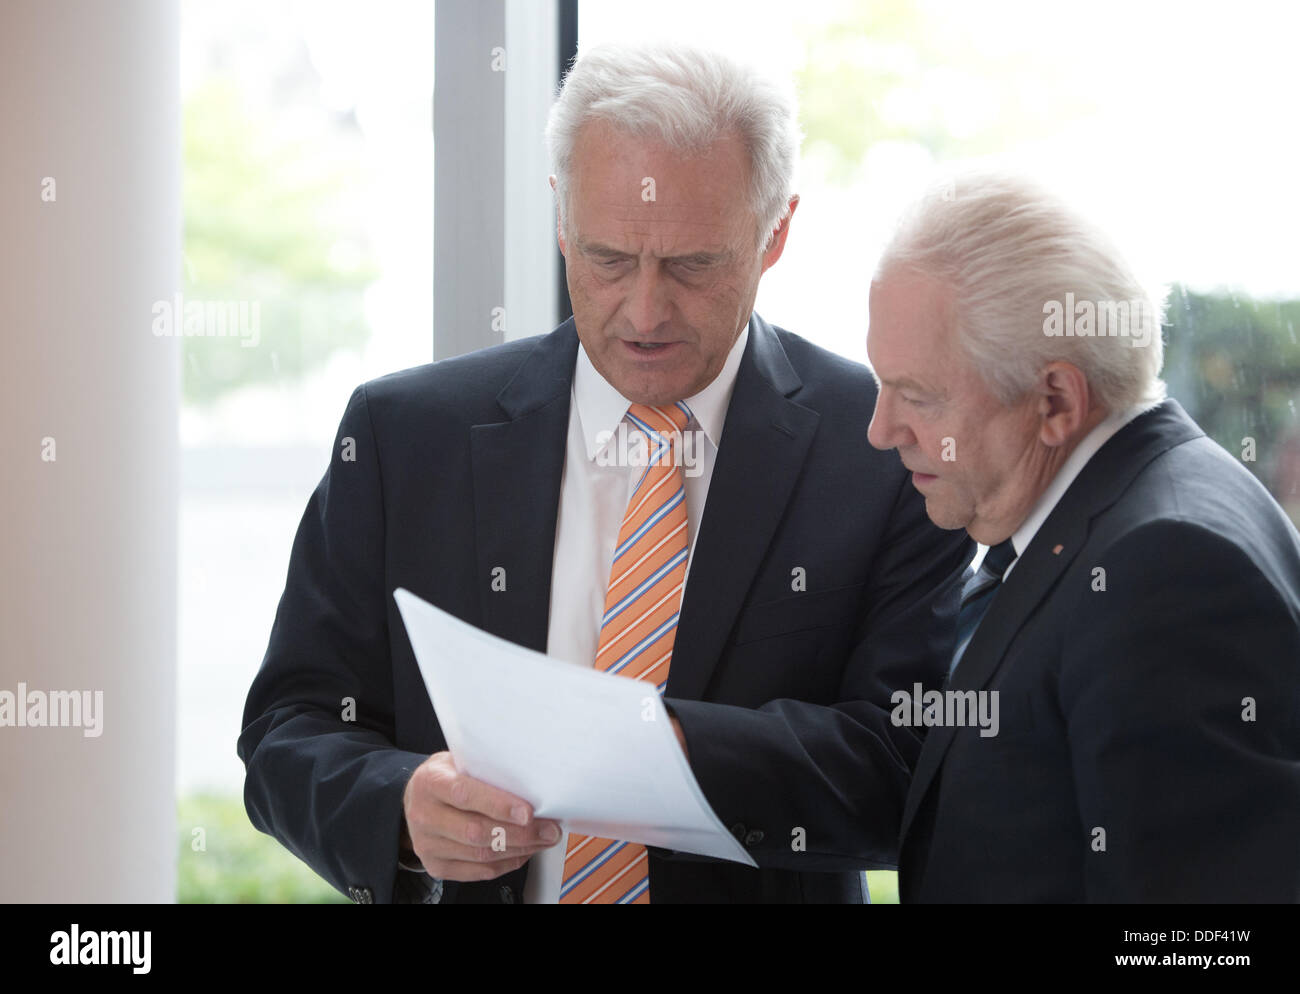 Berlin, Germany. 02nd Sep, 2013. German Transport Minister Peter Ramsauer (CSU, L) and the chairman of the Deutsche - Stock Image